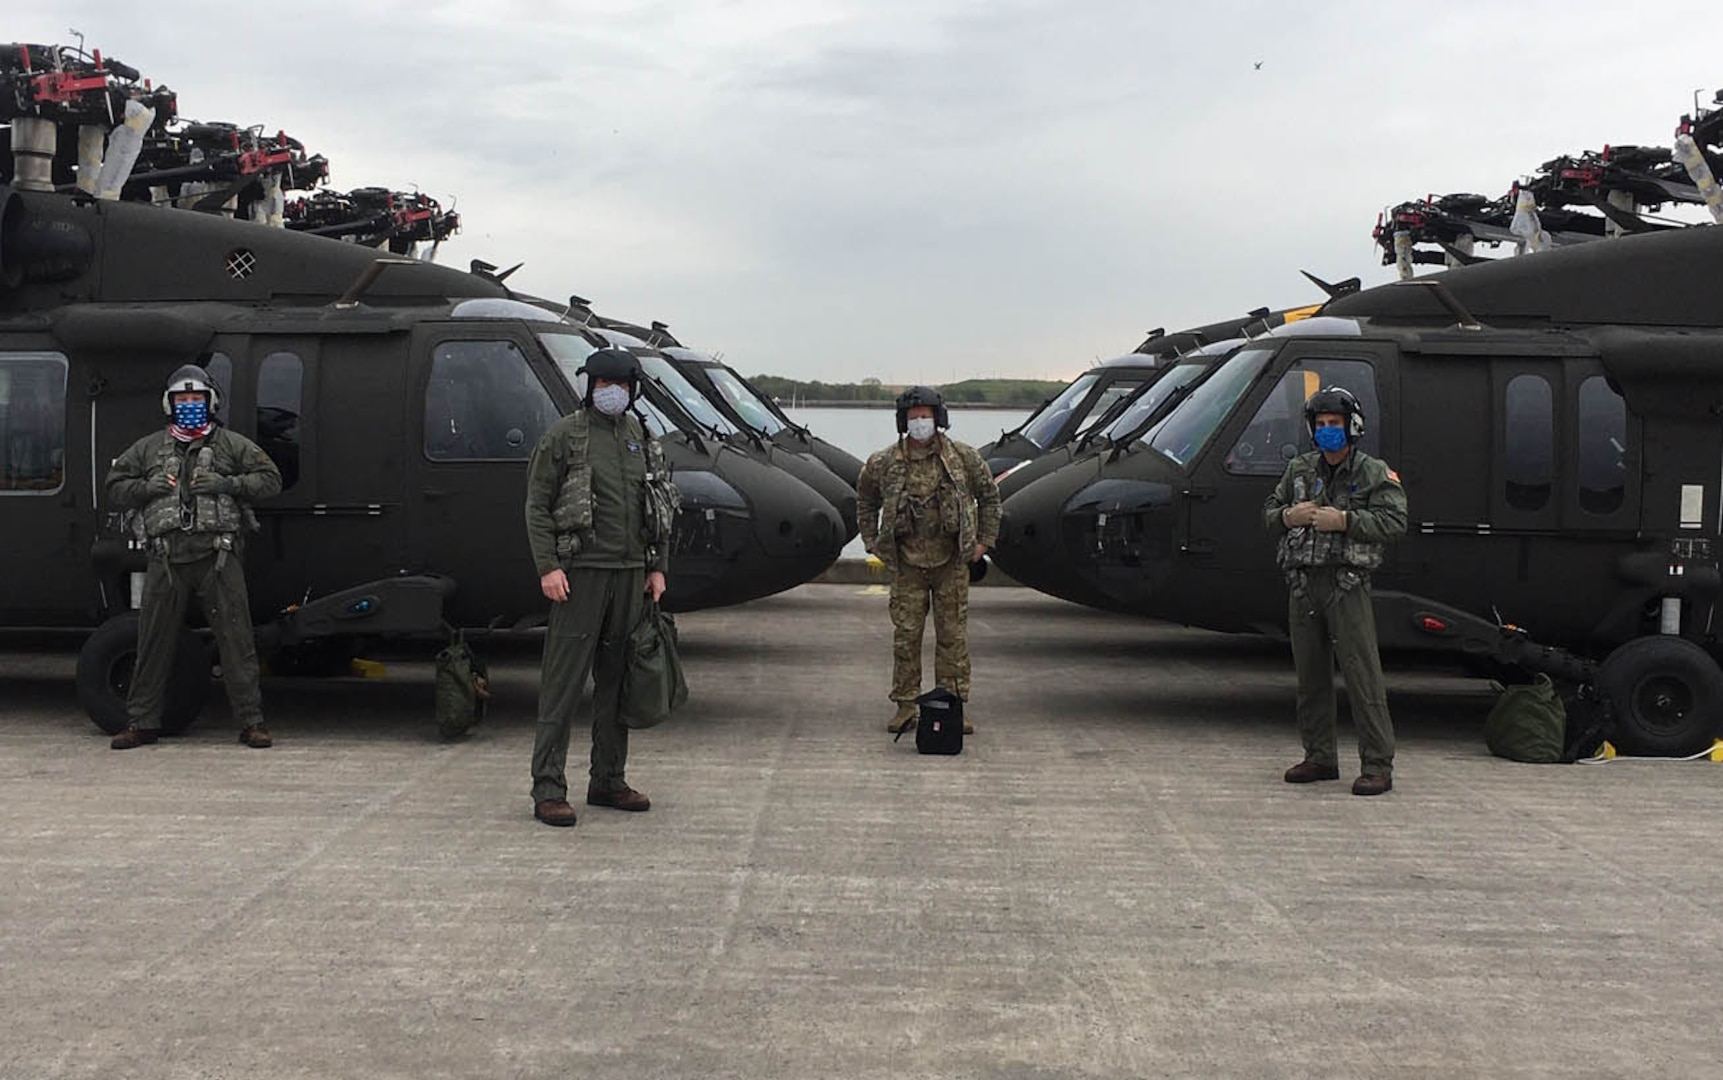 Four soldiers in flight suits stand in front of UH-60 Blackhawk helicopters.